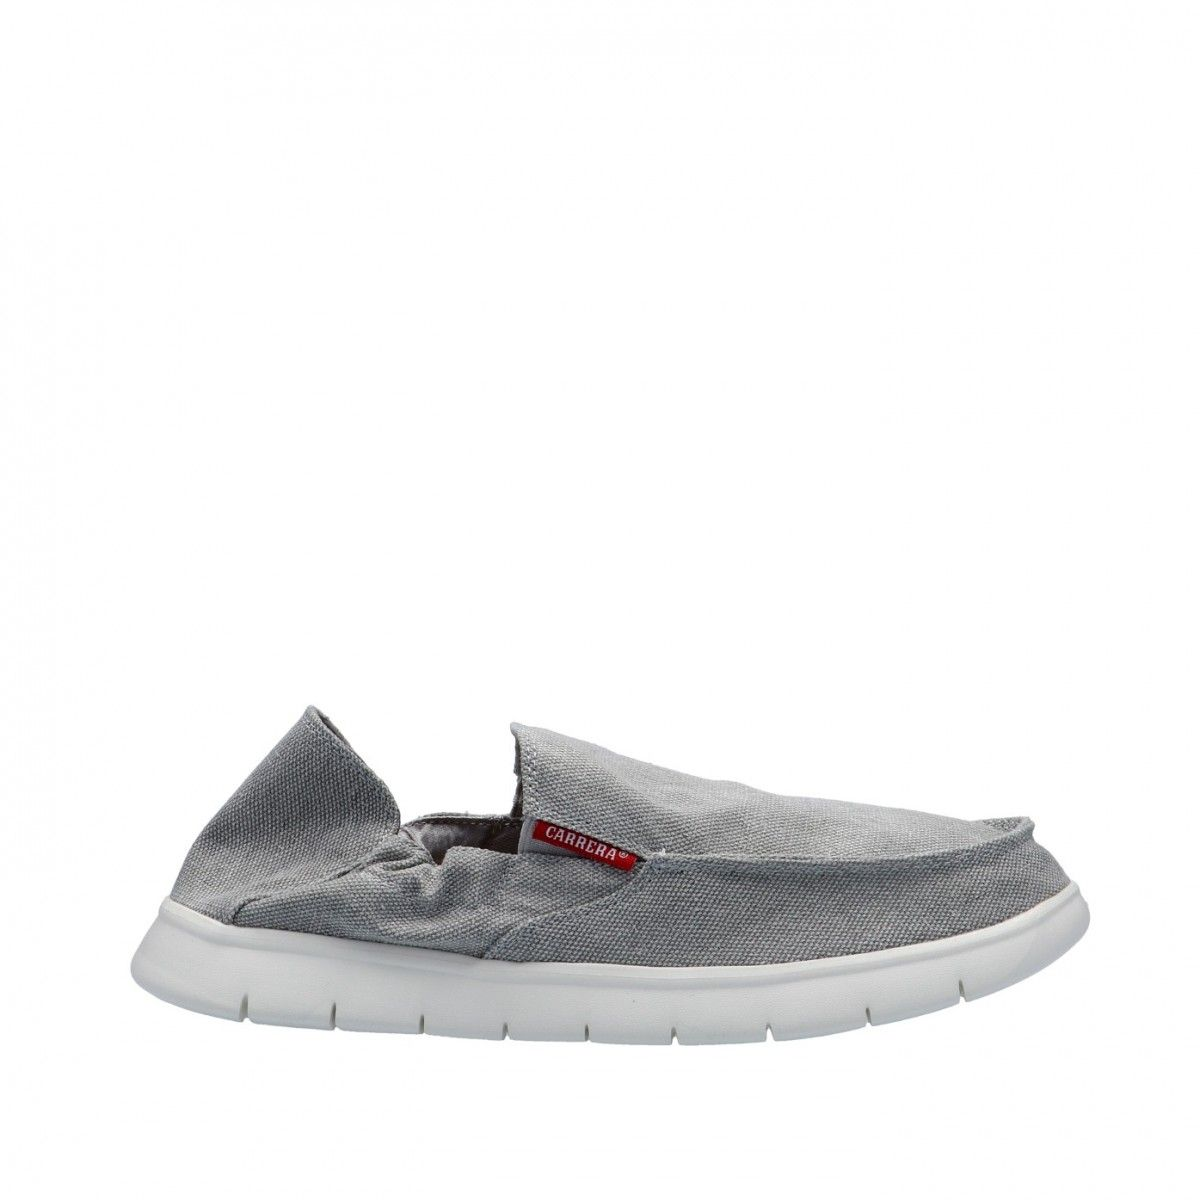 Carrera Slip on Grigio...